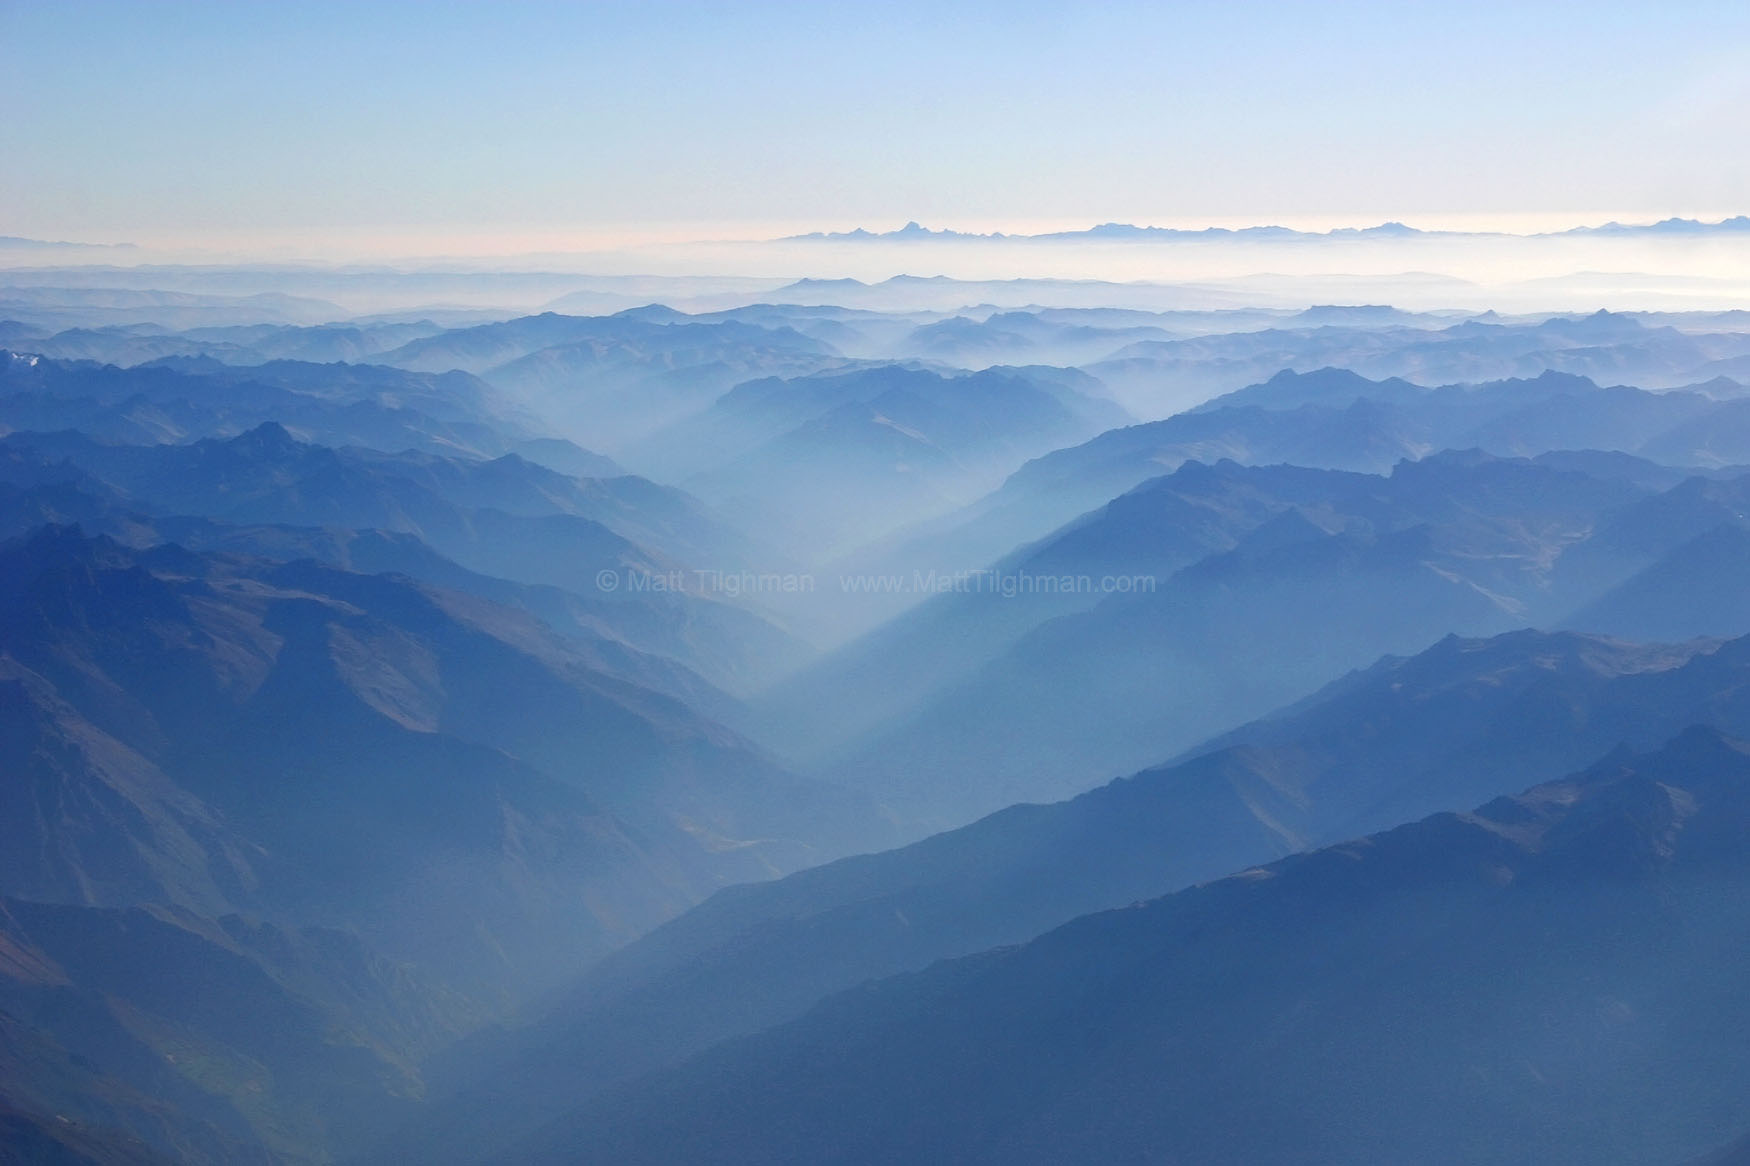 Fine art stock photograph of the Peruvian Andes. Photo taken from high above in an airplane.